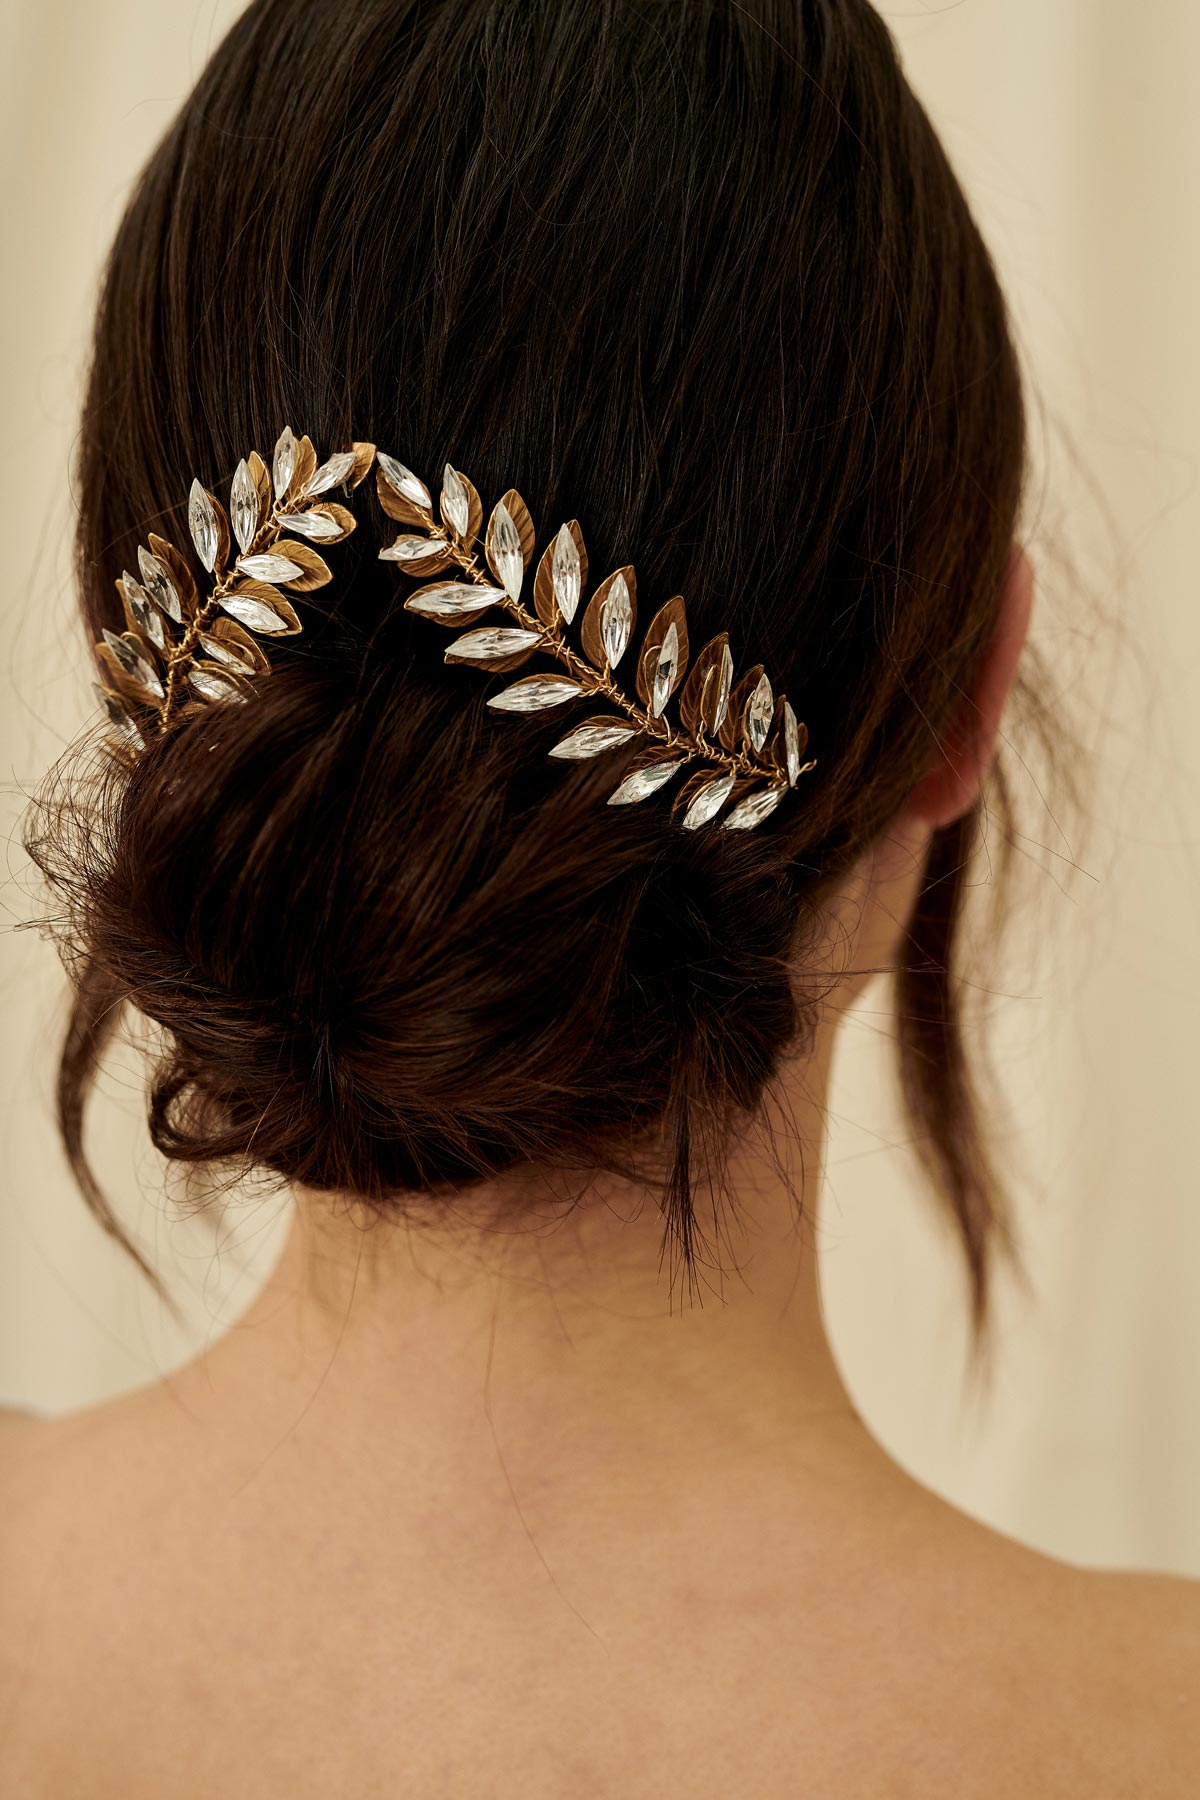 A glittery set of bridal hair pins featuring marquise crystals arranged in a leaflike pattern